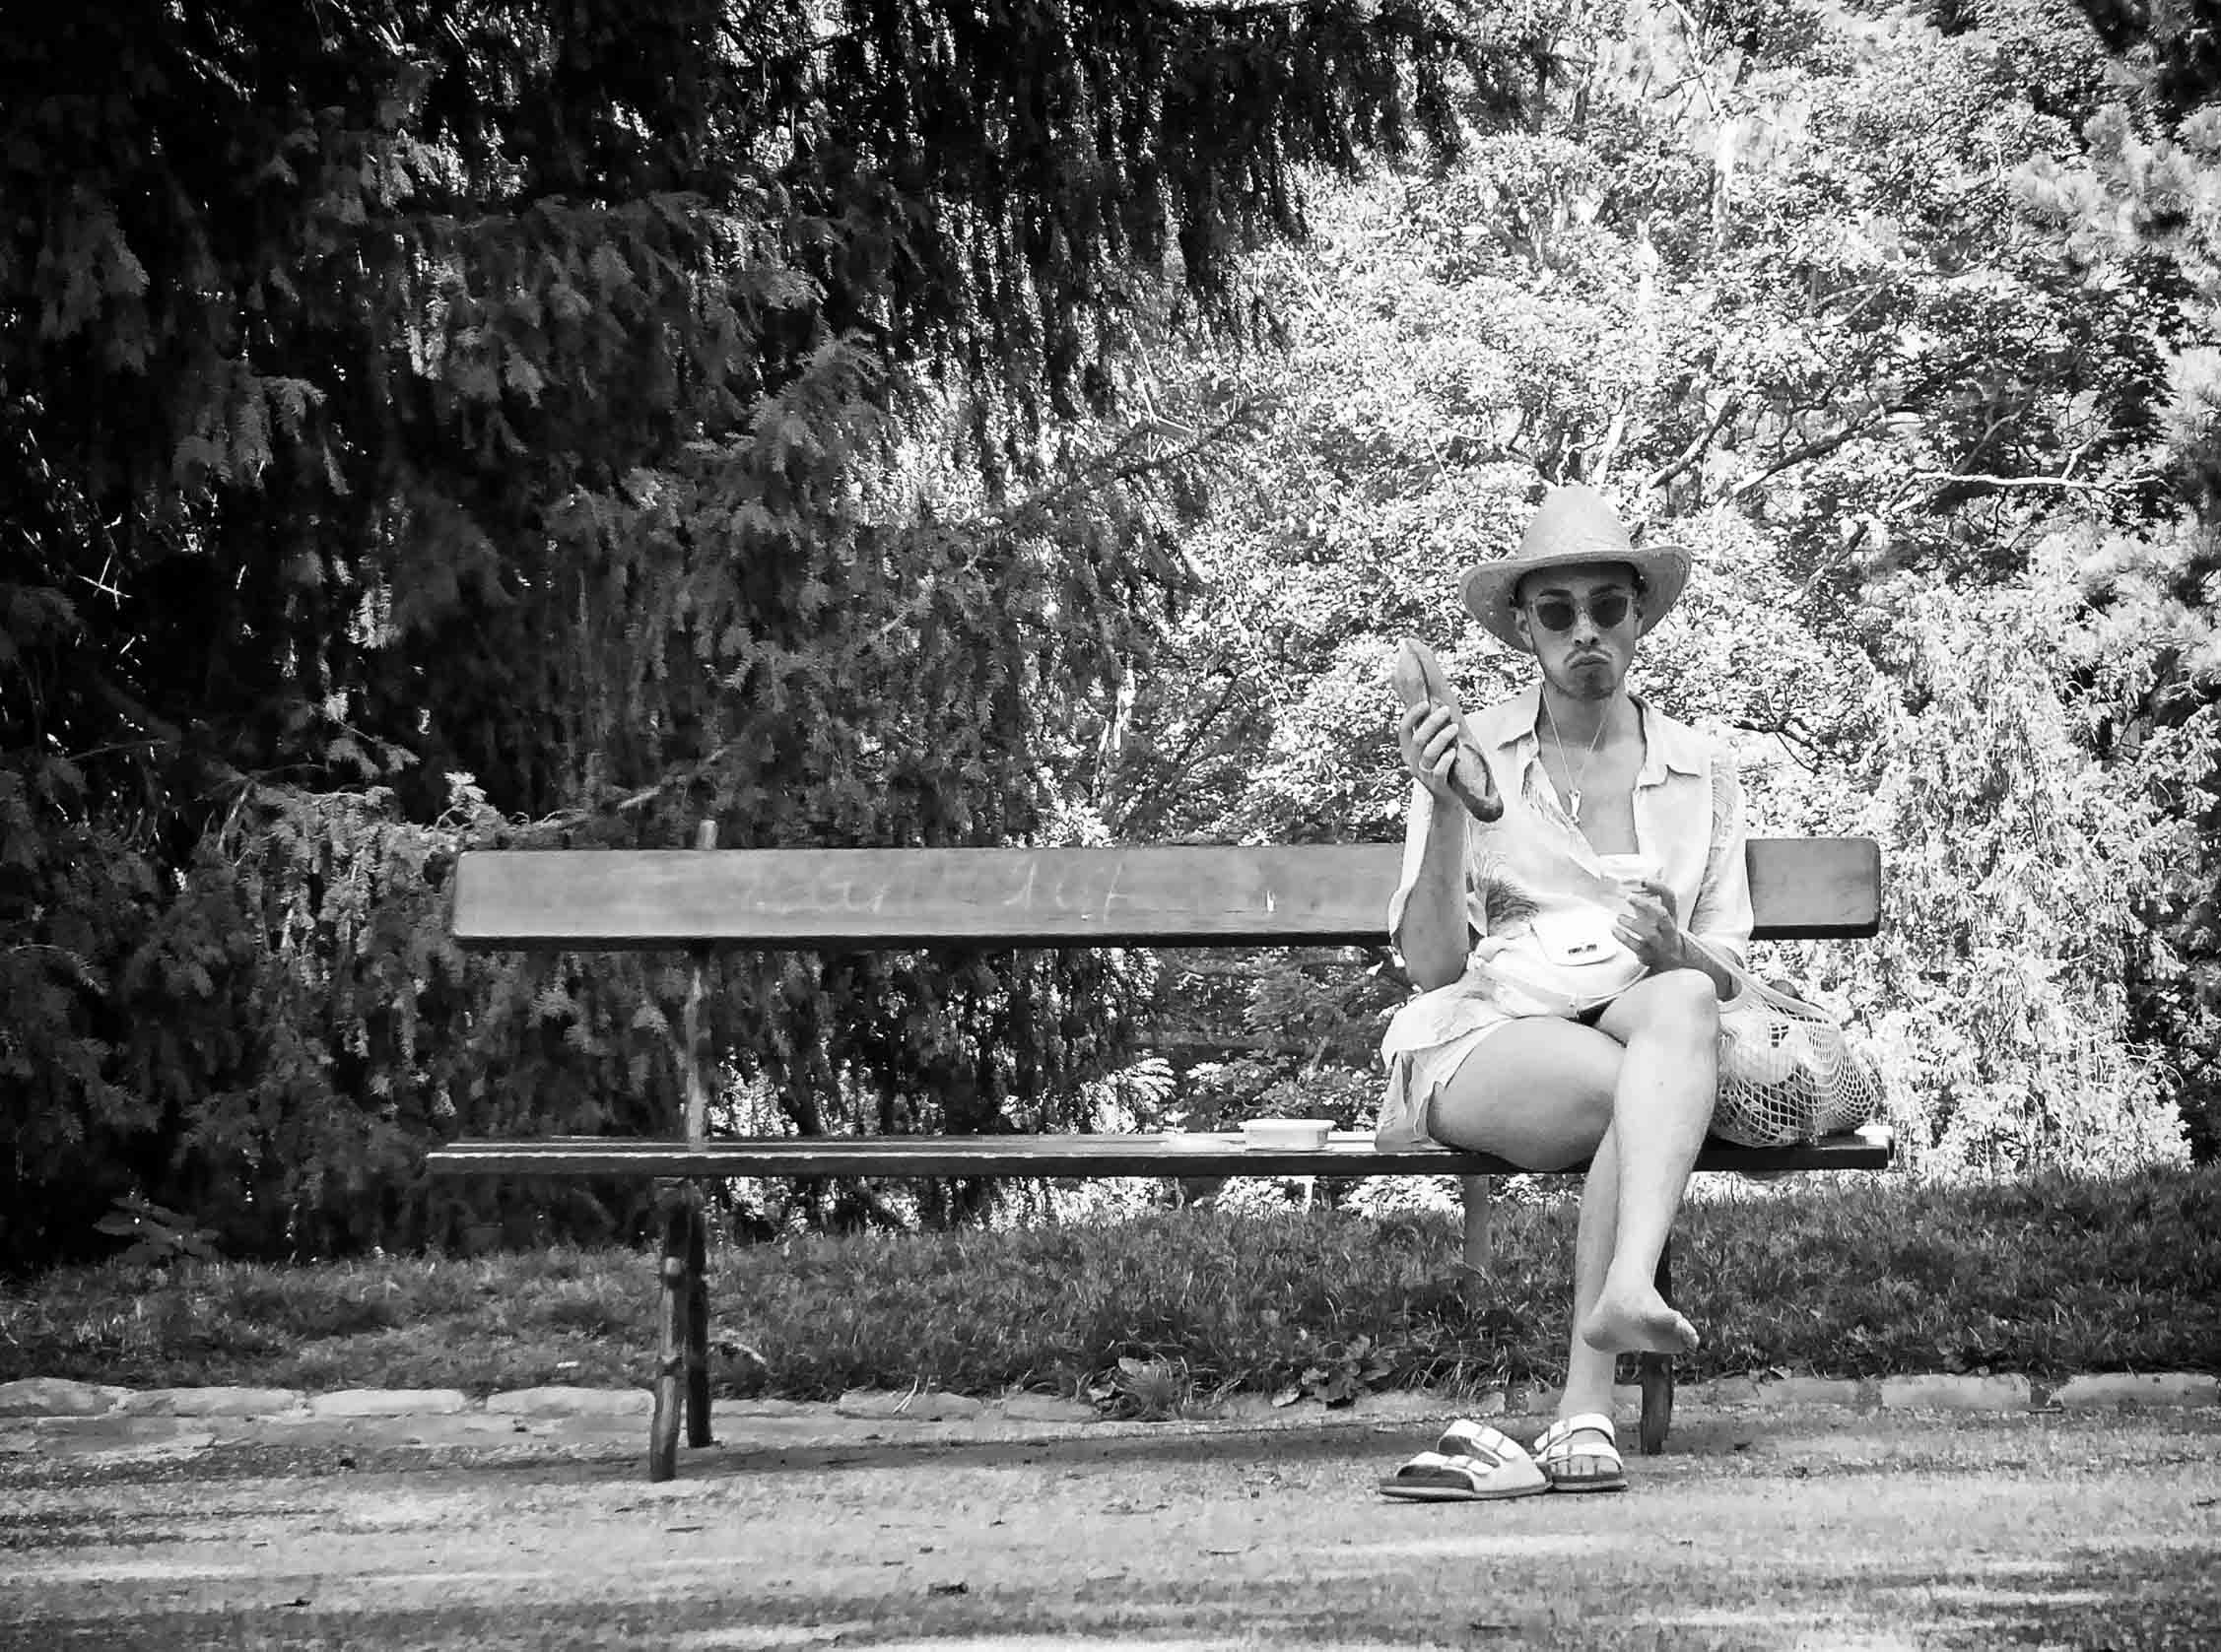 Black and white photo of a man on a bench